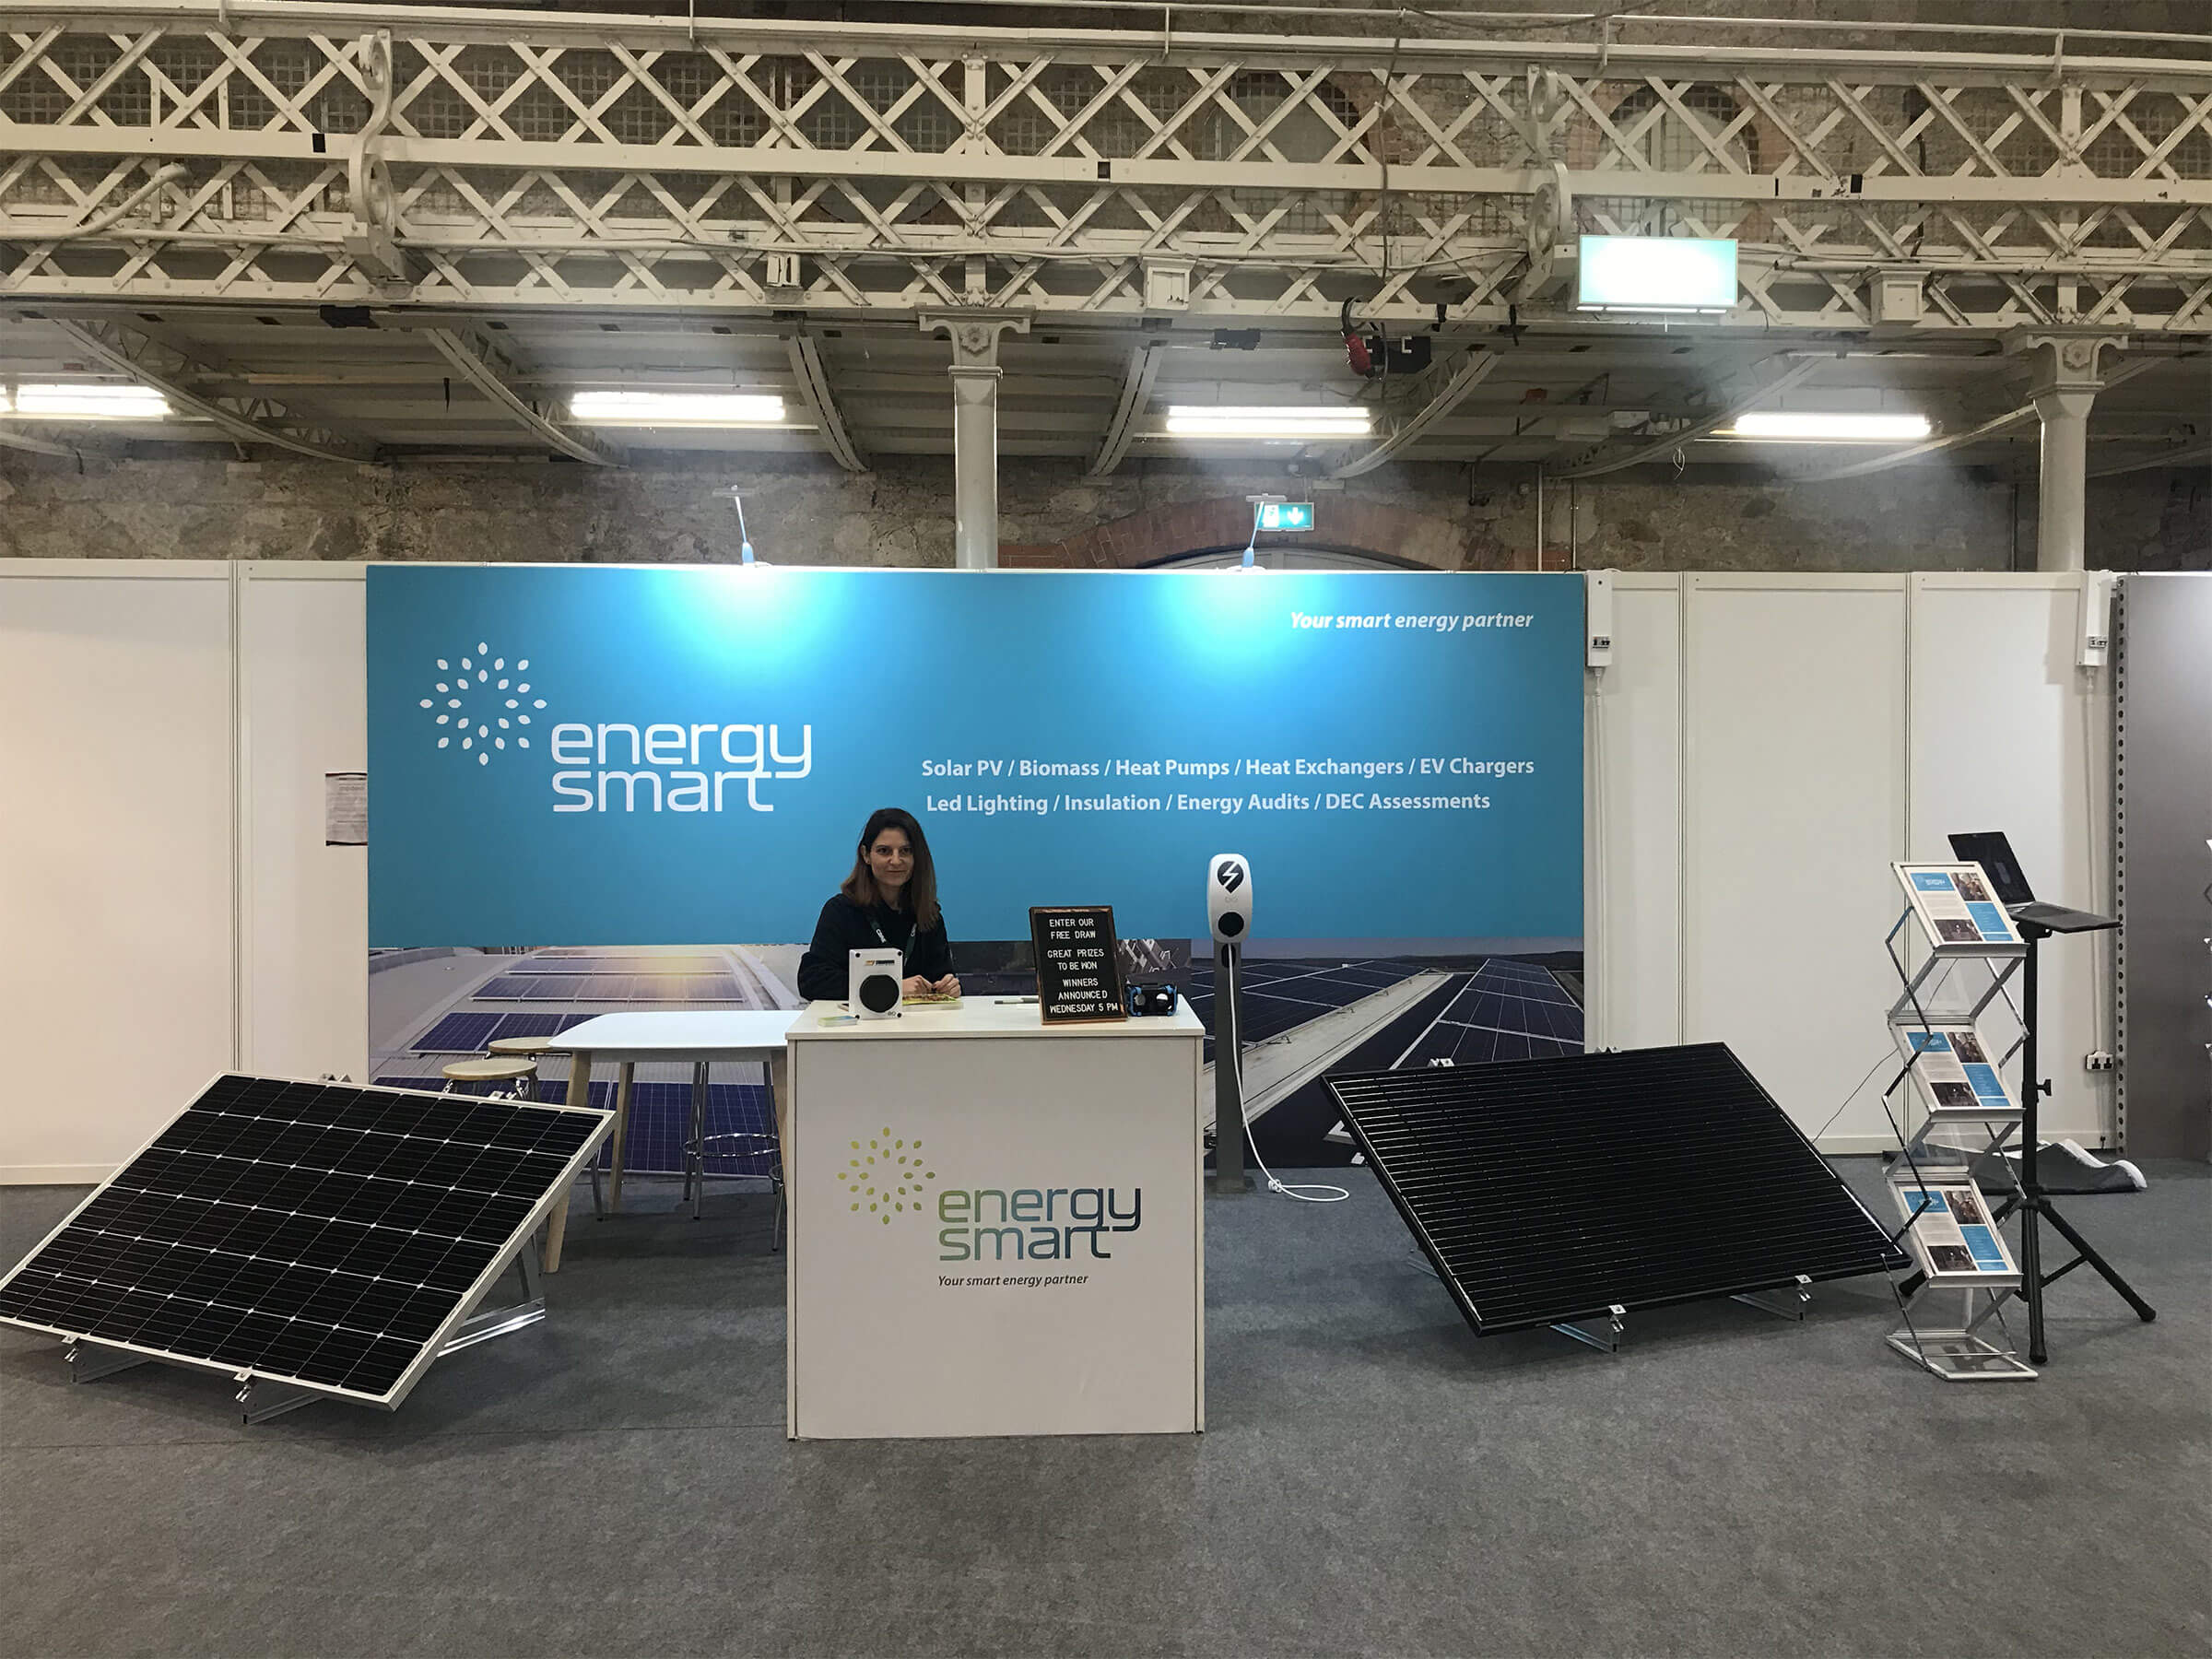 ENERGYSMART EXHIBIT AT THE WORKPLACE AND FACILITIES EXPO